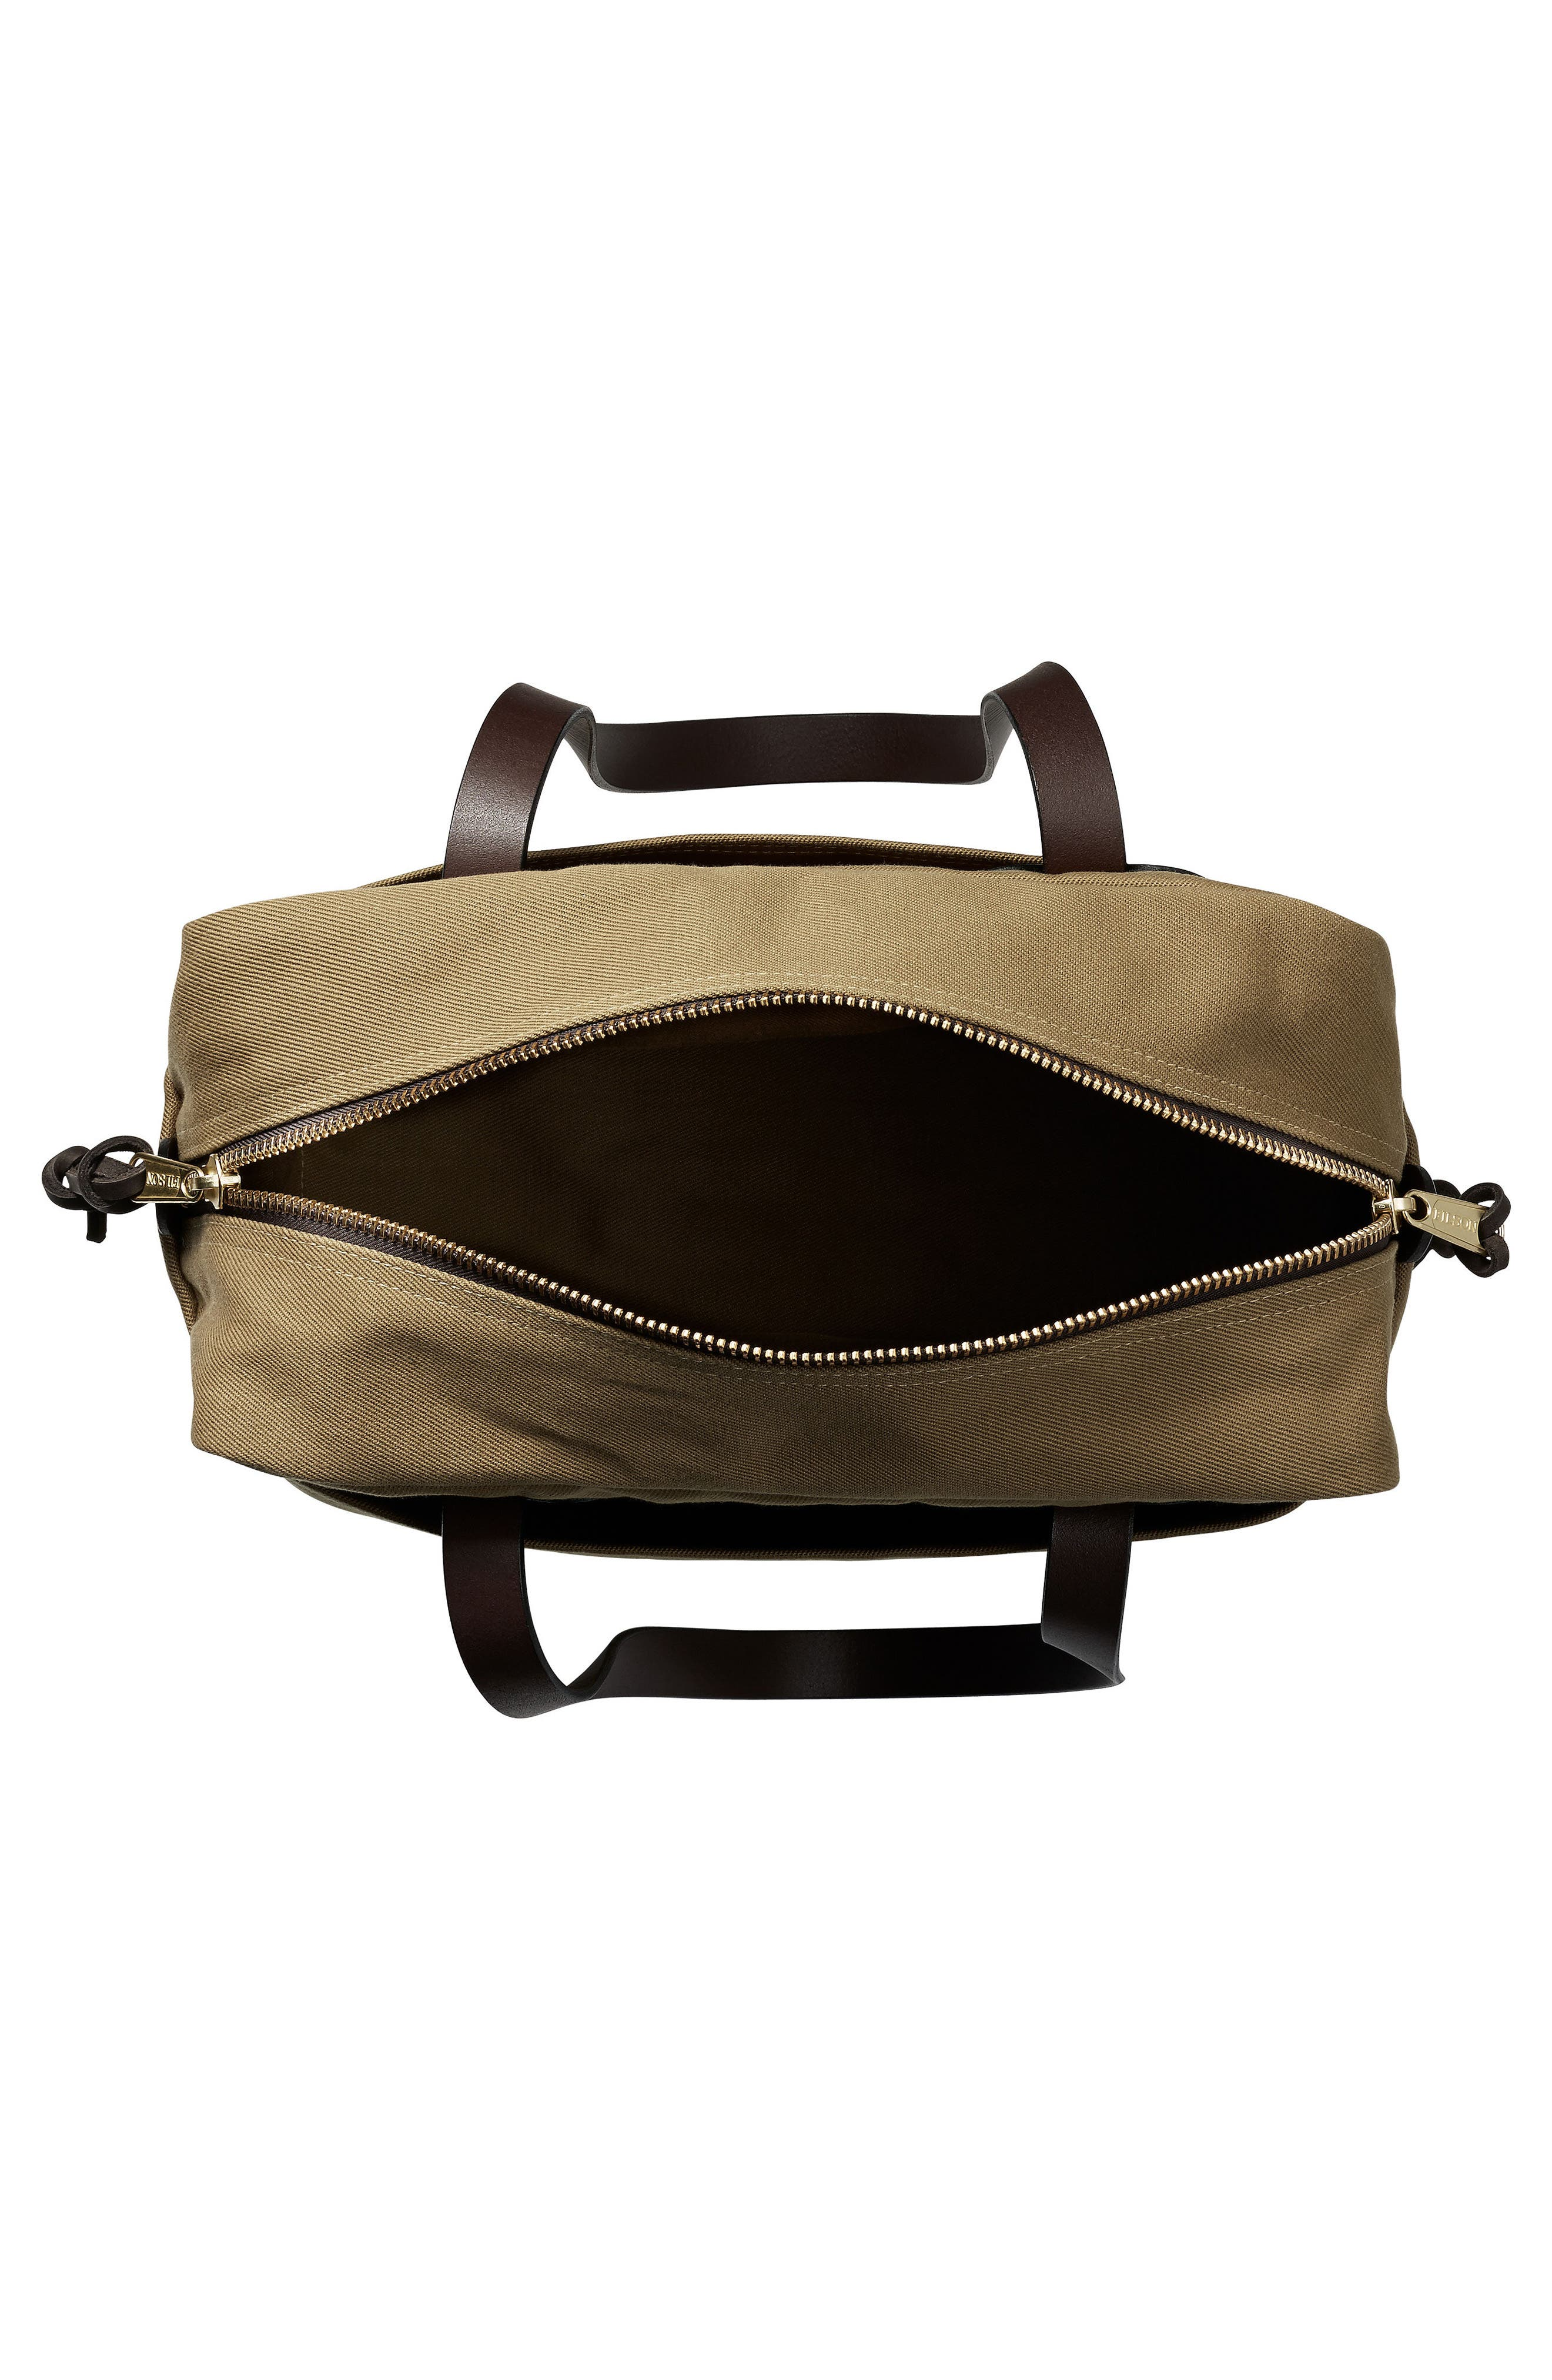 Rugged Twill Zip Tote Bag,                             Alternate thumbnail 3, color,                             242